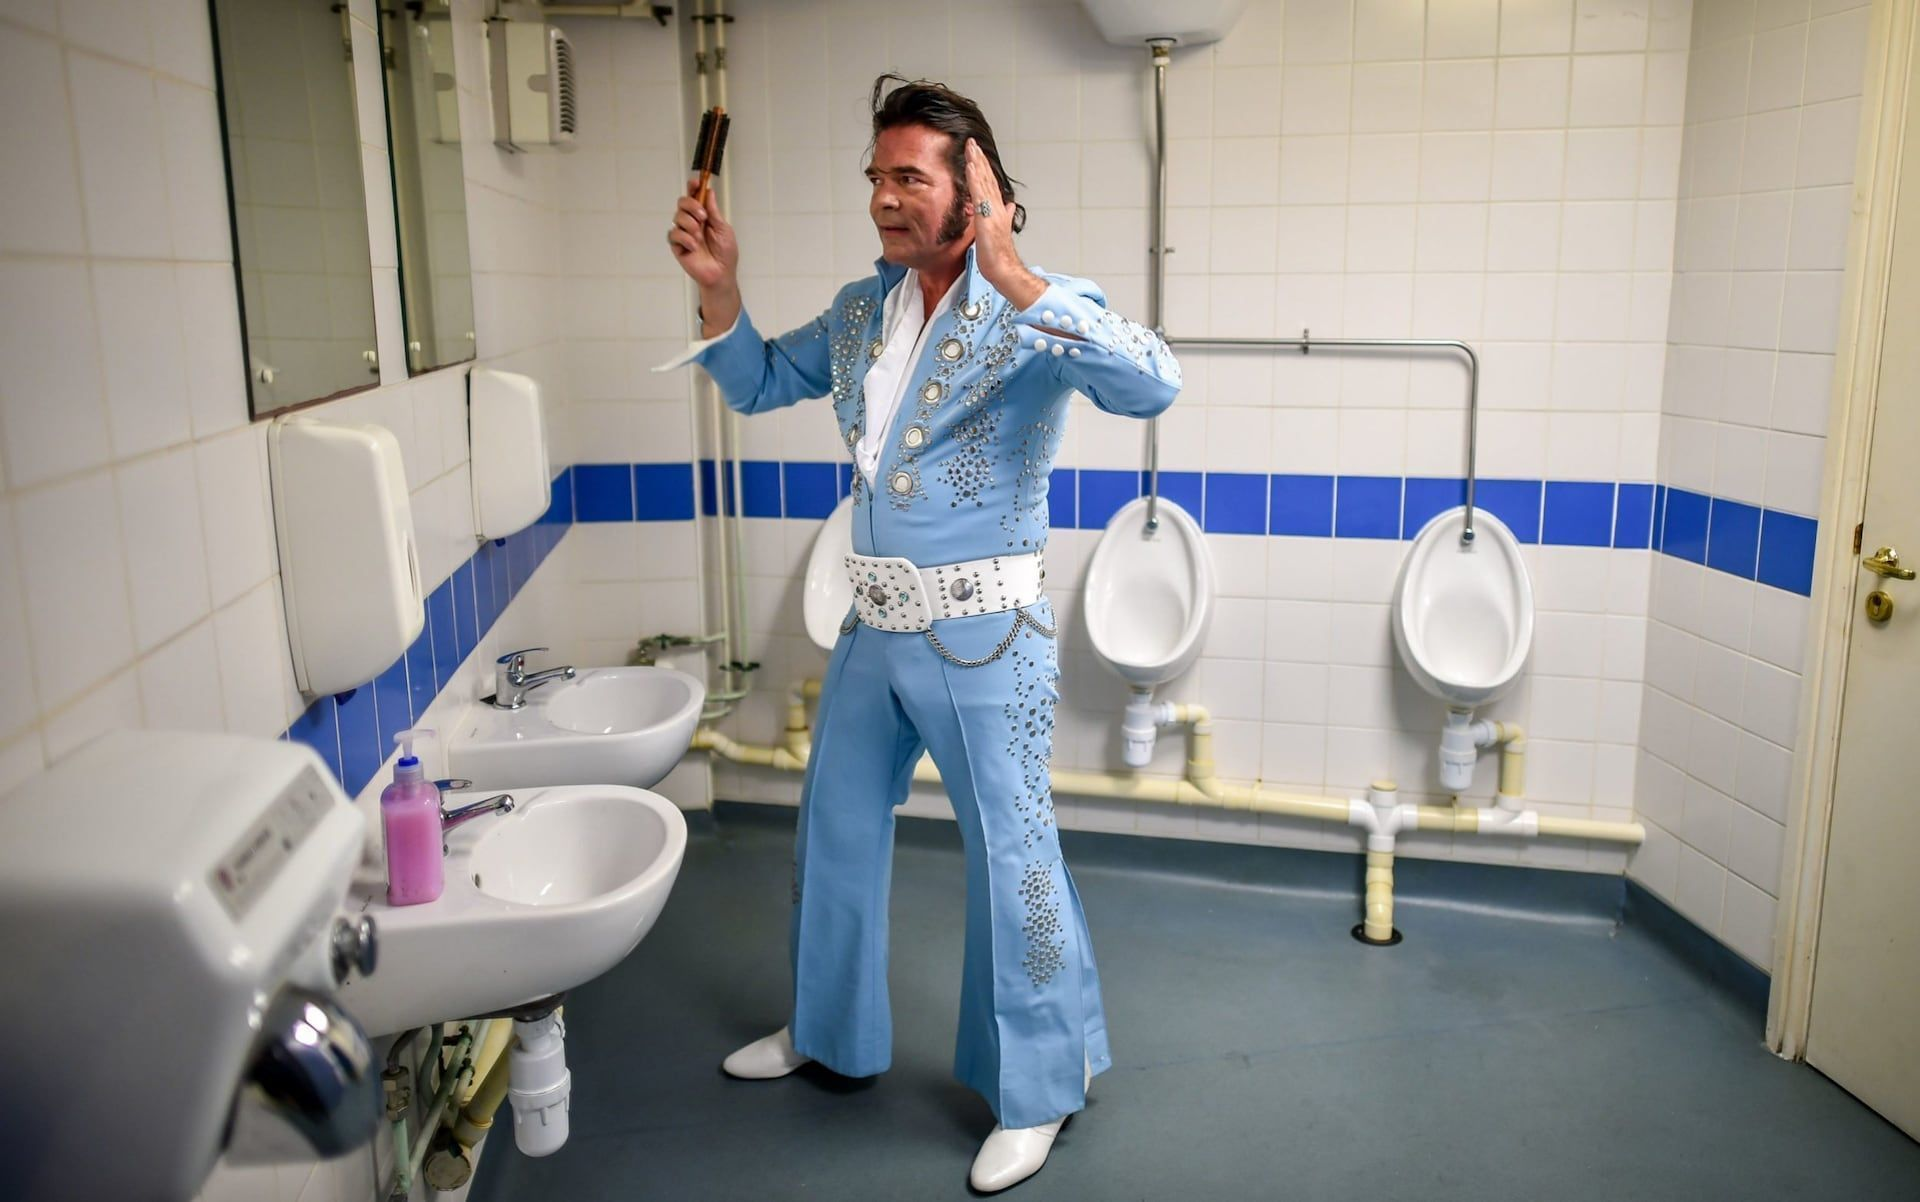 Pavillion Garten Garten Pavillion Garten Garden Garten Pavillion Garten Garten Garten An Elvis Finalises His Hair Inside The Toilets In The Grand Pavillion 2020